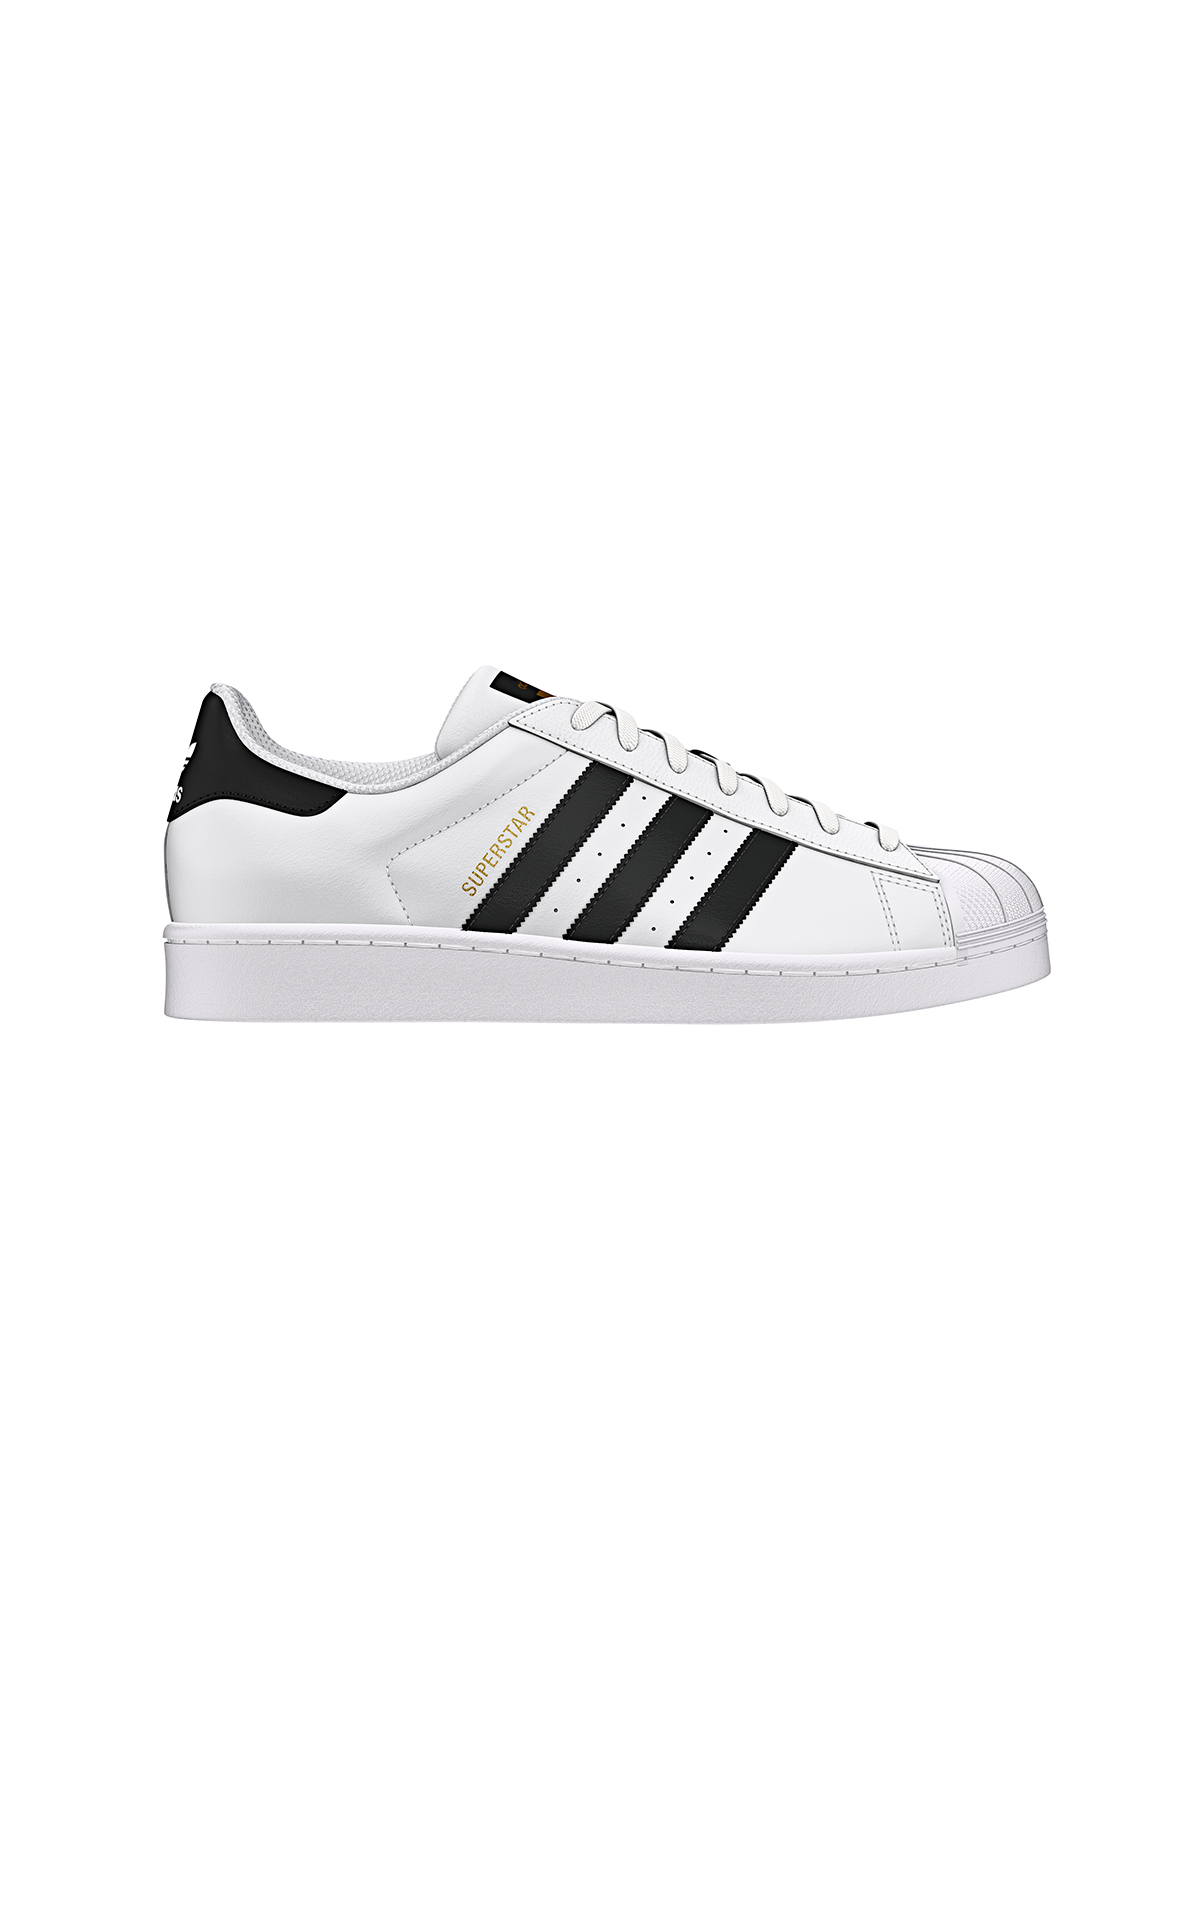 White and black Superstar sneakers adidas